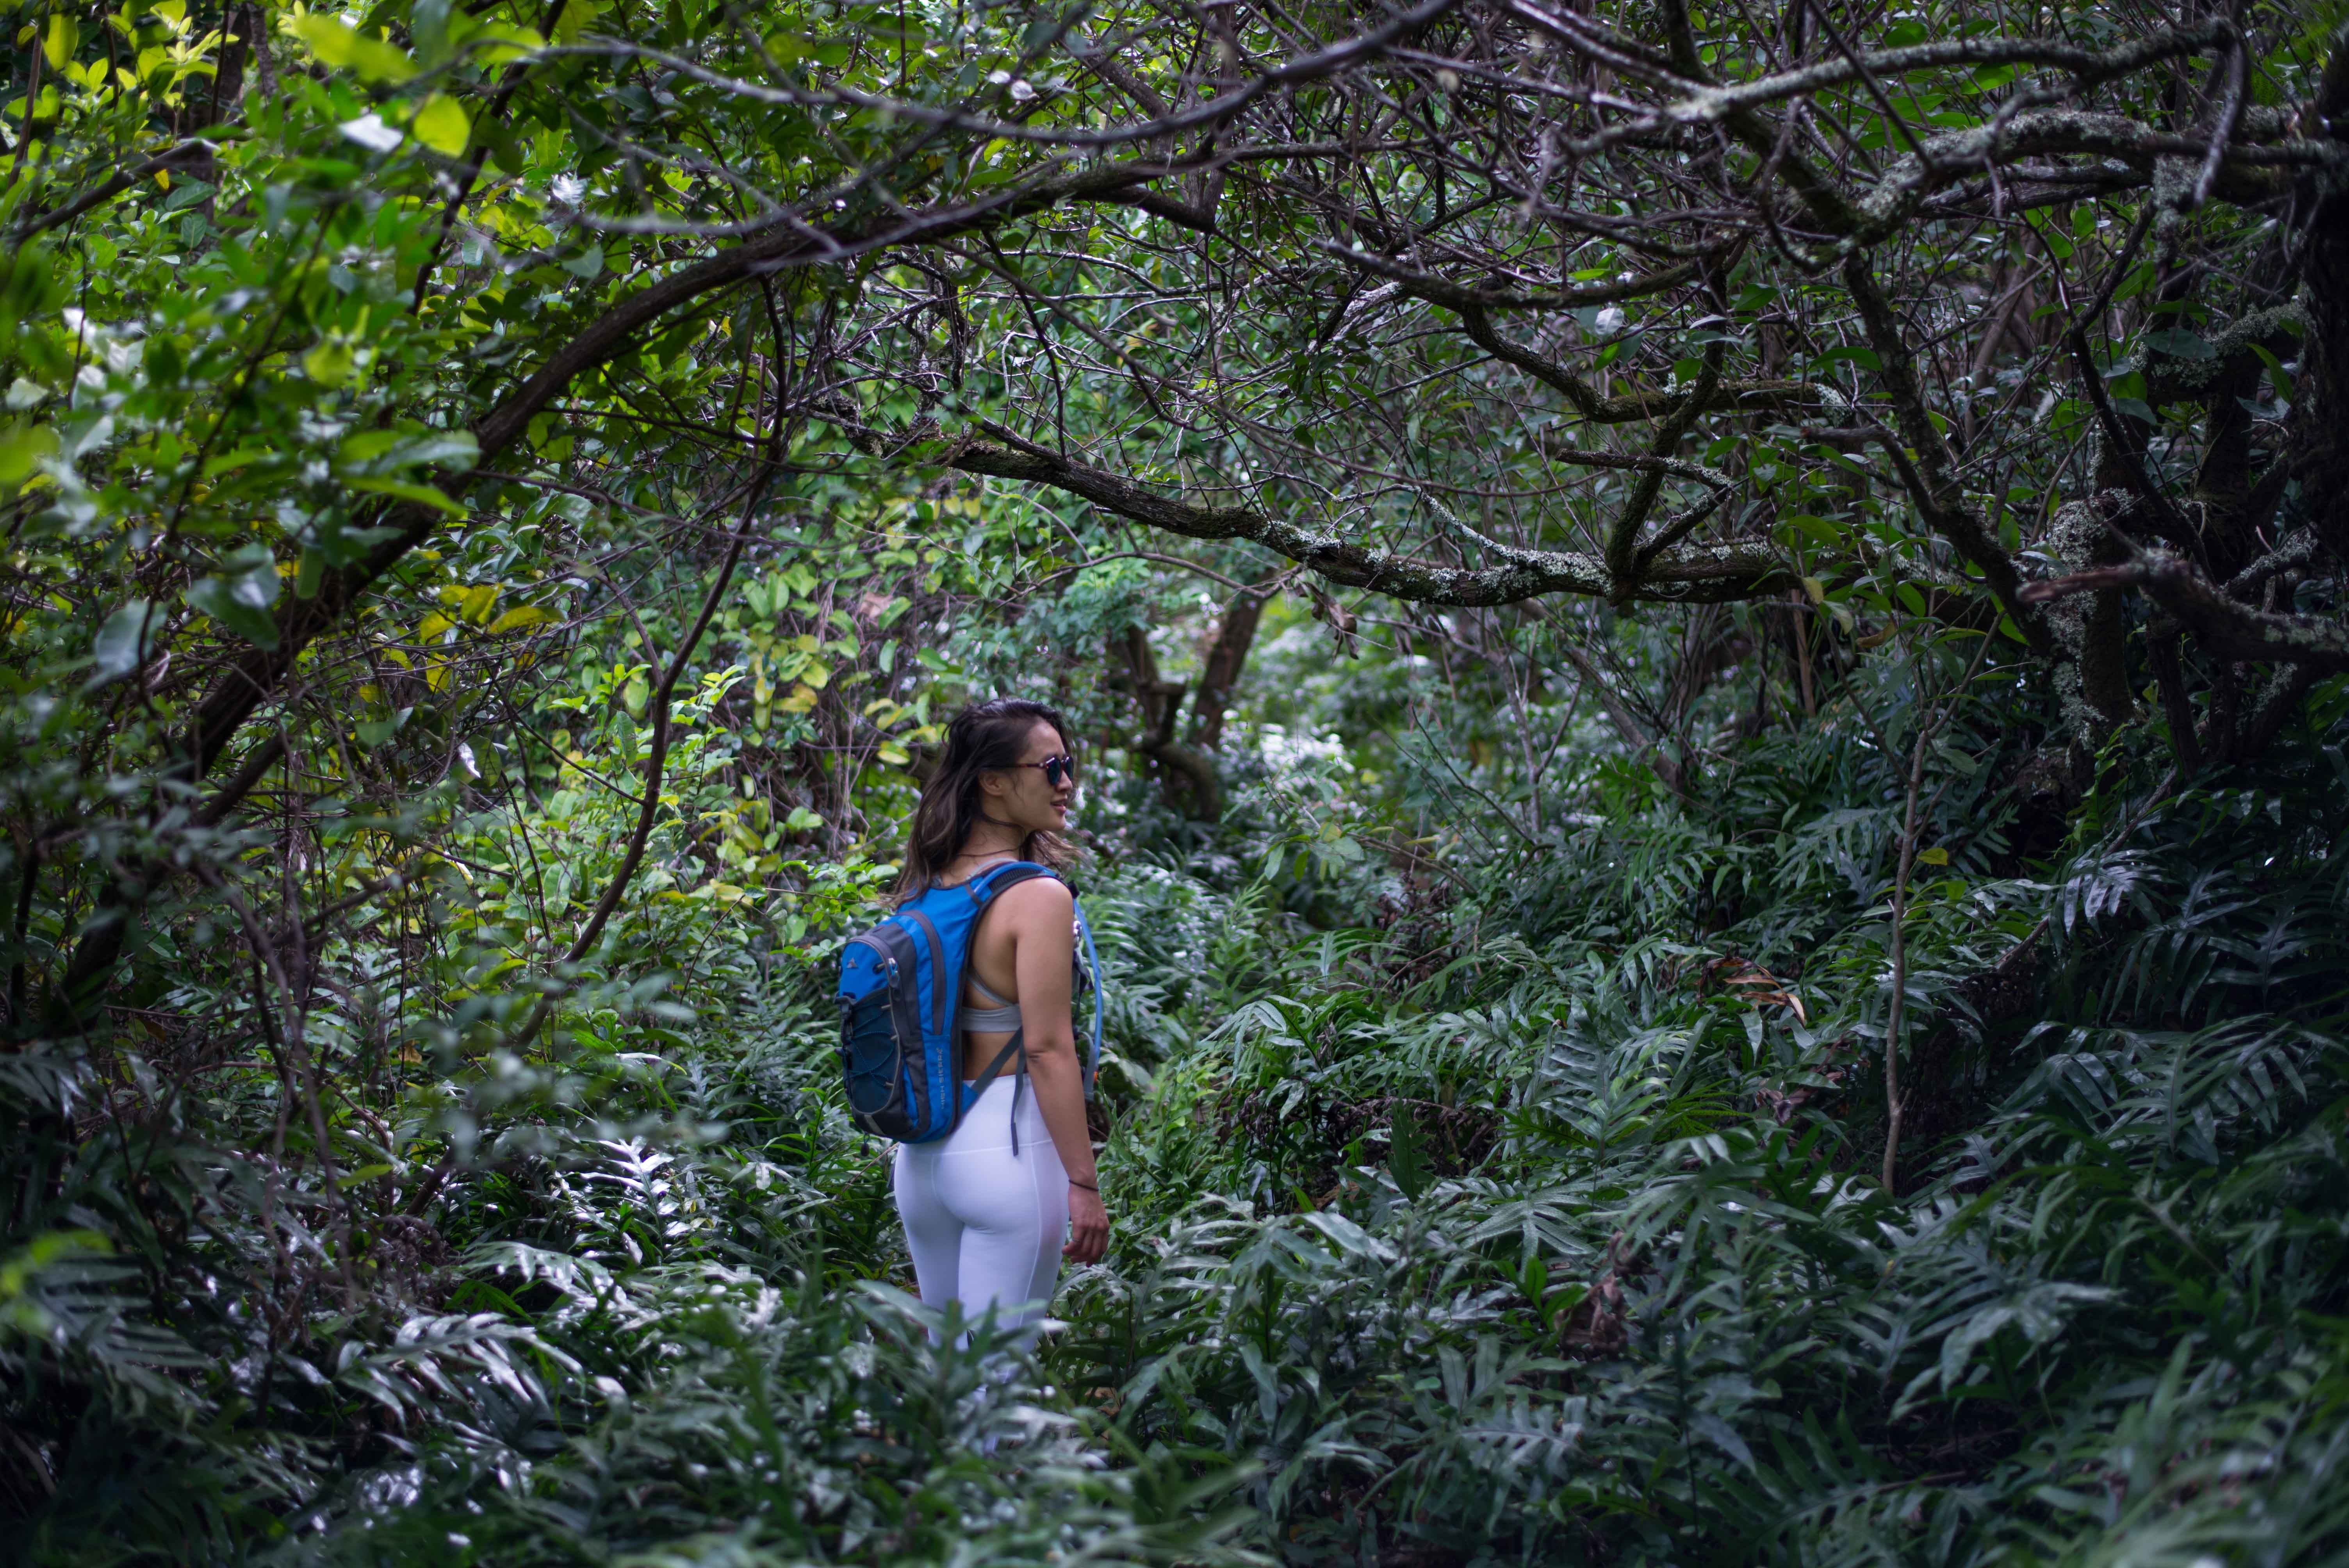 Hikes on Oahu, Hawaii: Olomana Hike - Tropical Jungle